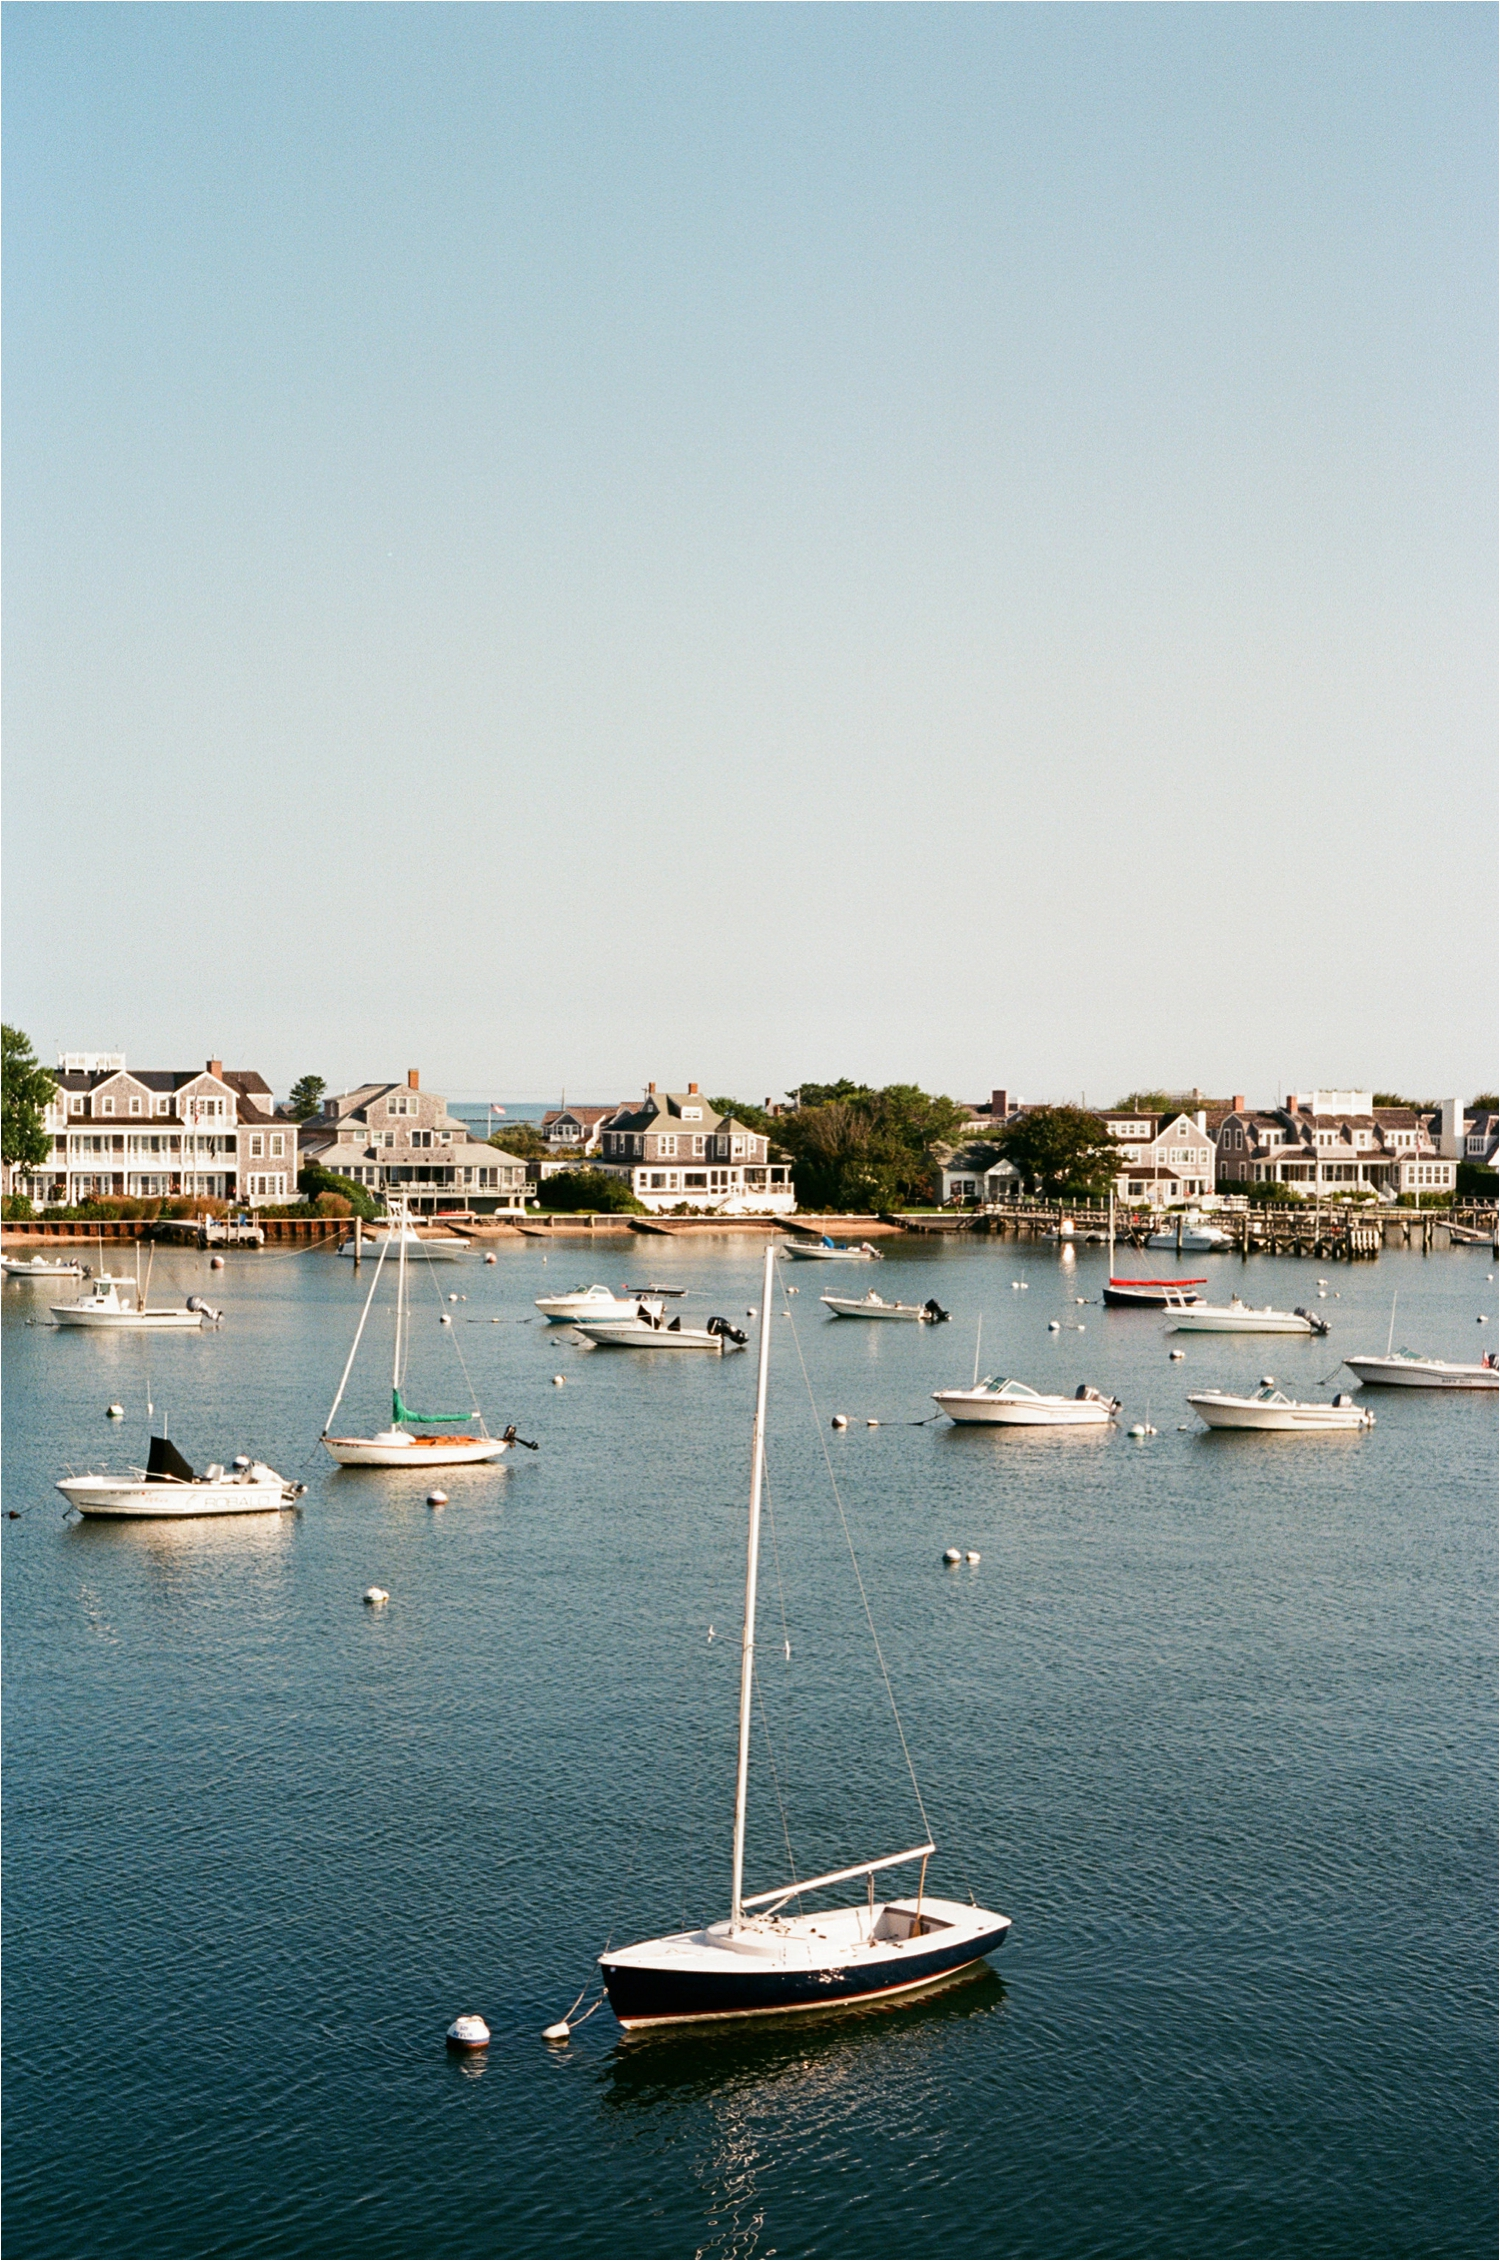 Nantucket Photographers: Film Shots from around the island